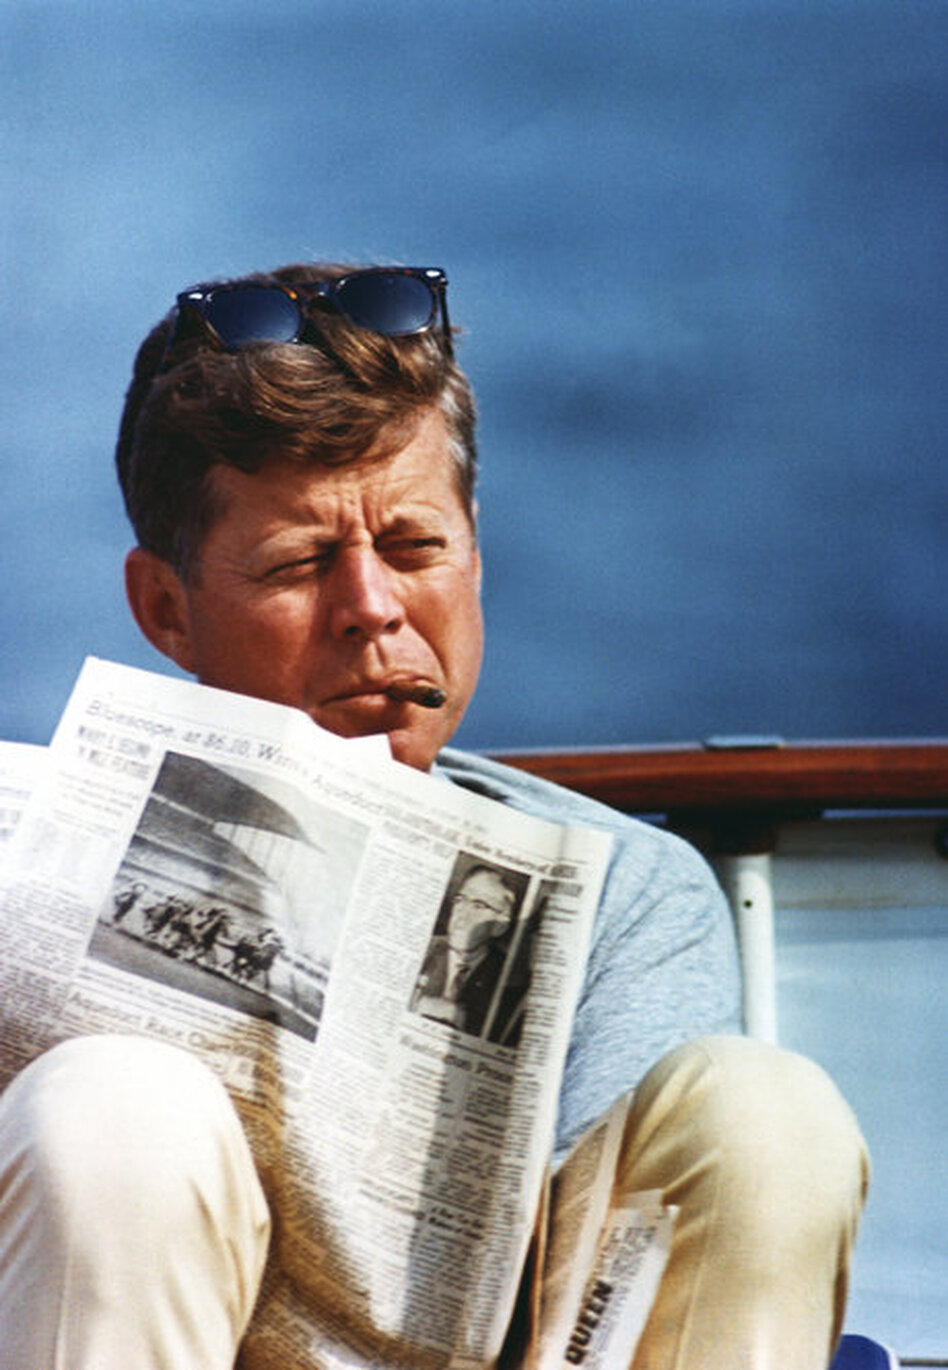 President Kennedy aboard the family yacht, the Honey Fitz, on Aug. 31, 1963, off Hyannis Port, Mass.  (John Fitzgerald Kennedy Library/NPR)